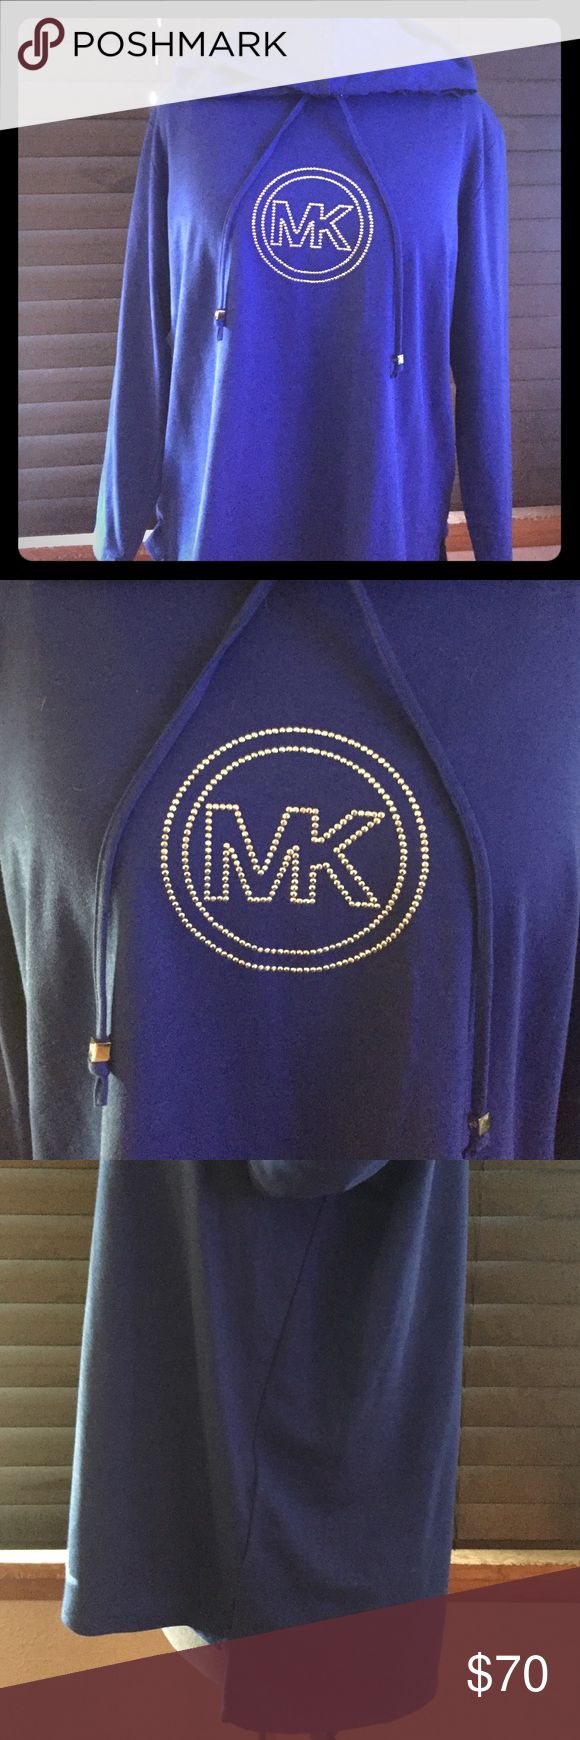 Michael Kors bling light weight sweatshirt. NWT Michael Kors bling light weight sweatshirt. MK logo blinged on the chest, MK logo on toggles of good, hi low design. Cotton / Poly blend so it's more like tshirt material than sweatshirt. I bought it in 3 colors and just haven't wore this one yet. When I have worn the others I got tons of compliments 😎 MICHAEL Michael Kors Tops Sweatshirts & Hoodies